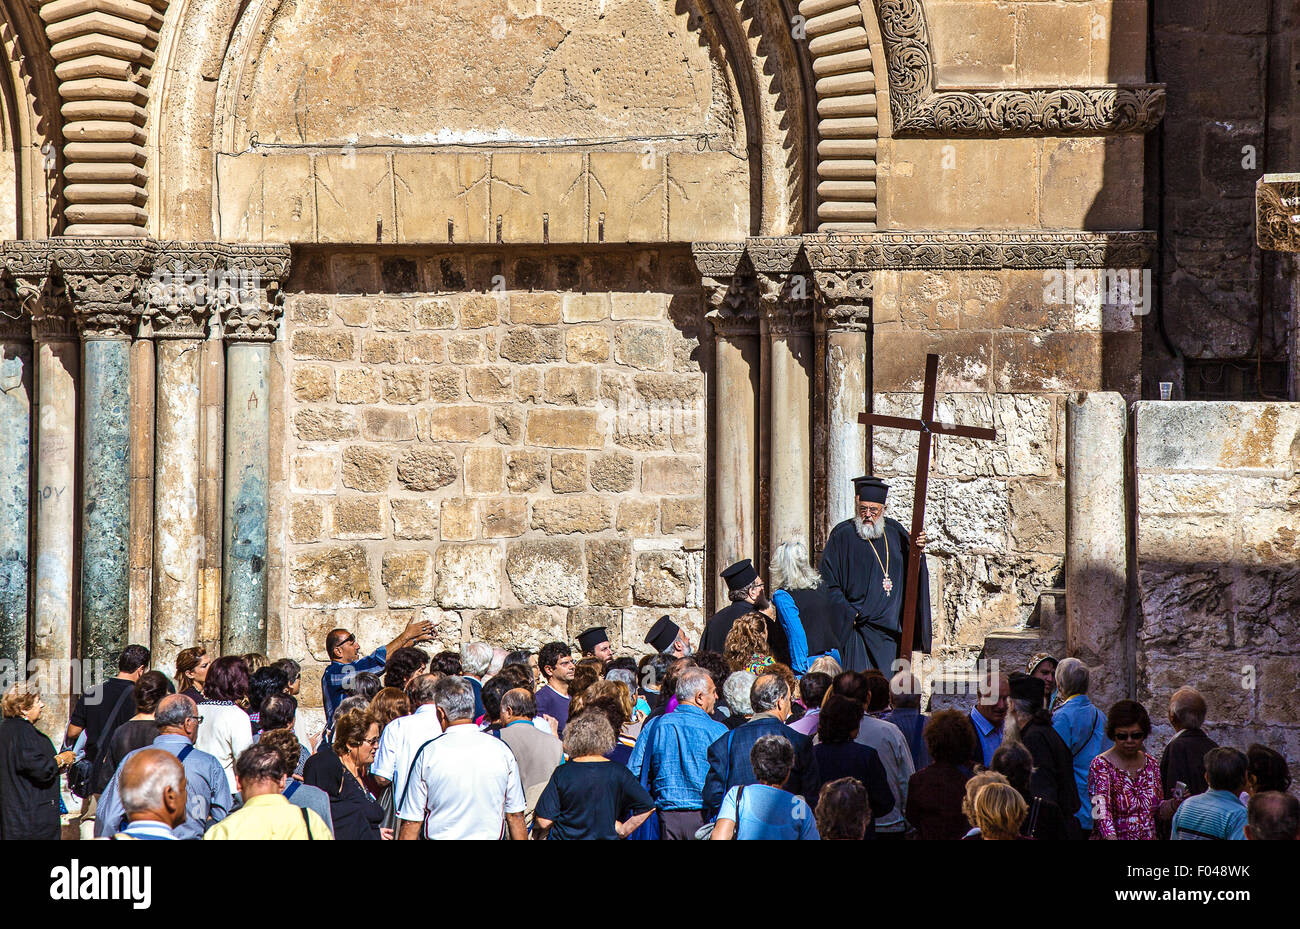 Israel, Jerusalem, the Church of the Holy Sepulchre - Stock Image